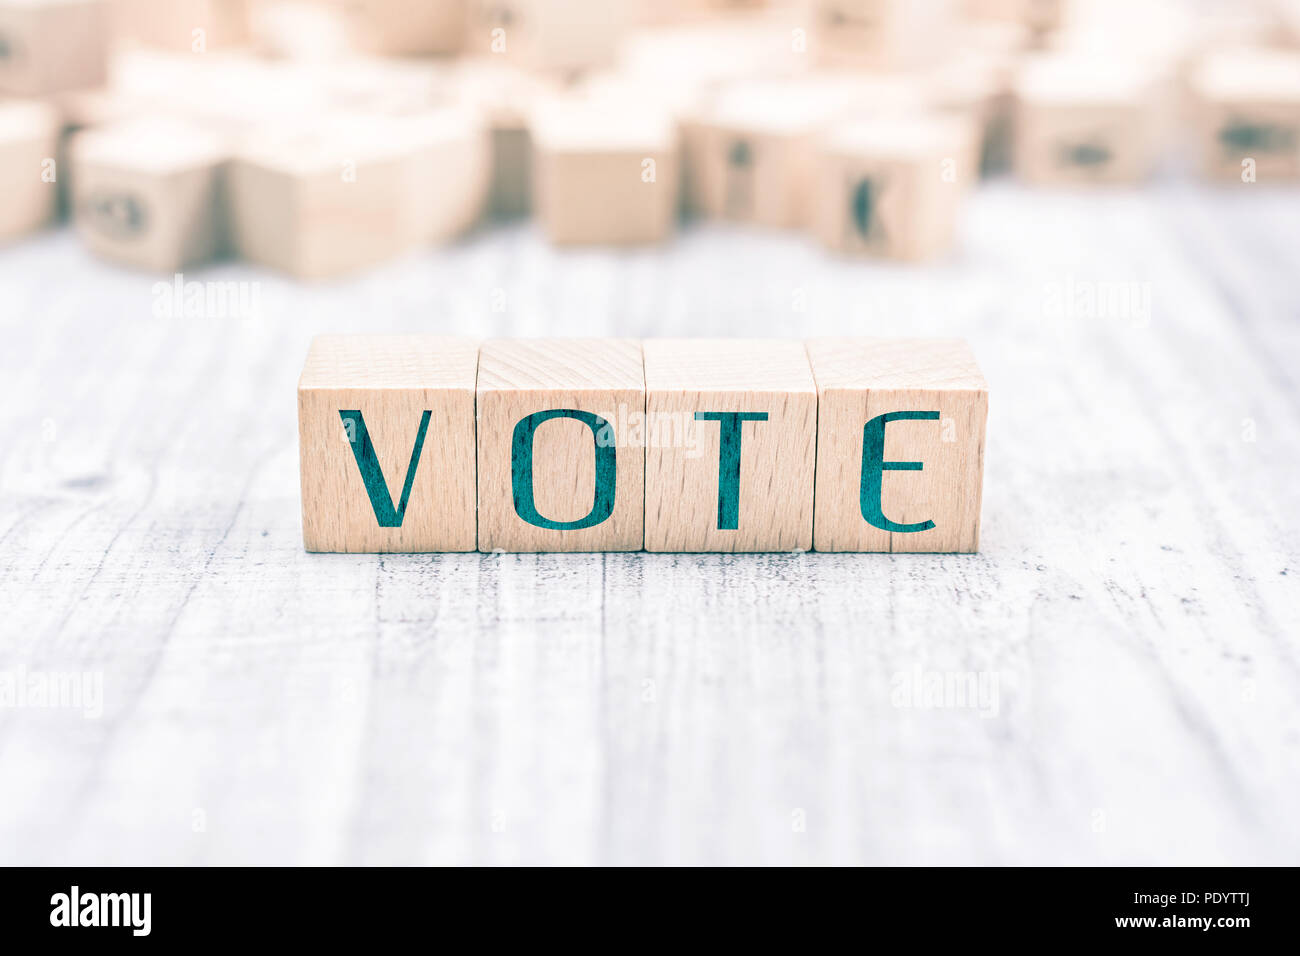 The Word Vote Formed By Wooden Blocks On A White Table, Reminder Concept Stock Photo